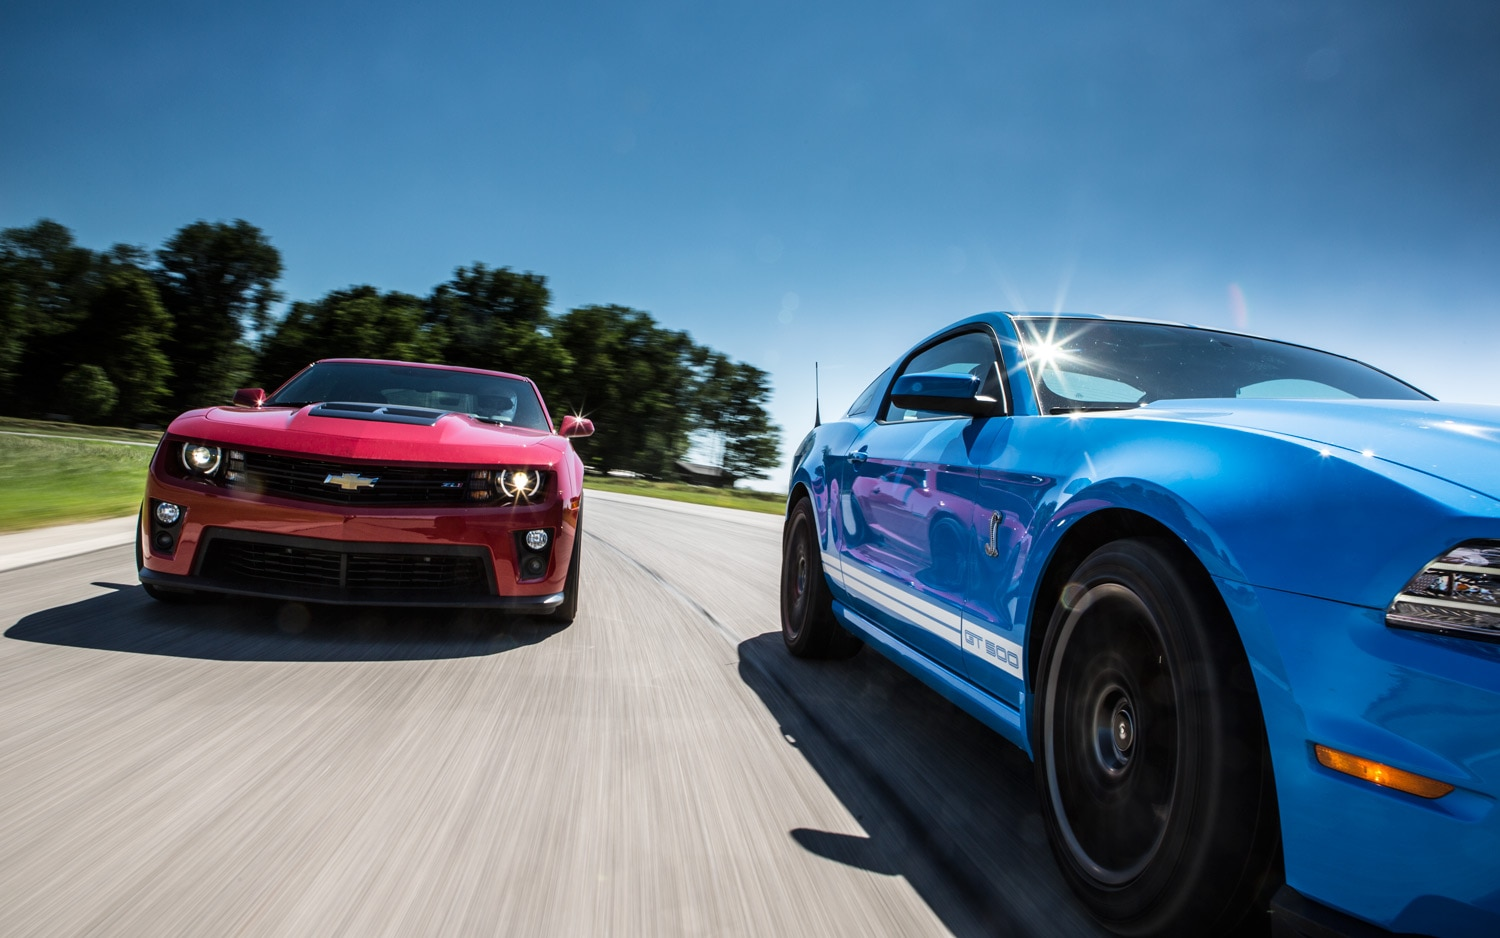 2012 Chevrolet Camaro Zl1 Vs 2013 Ford Shelby Gt500 On